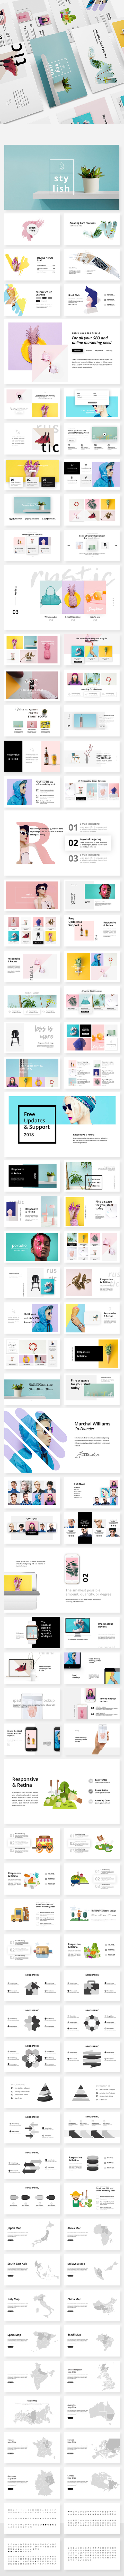 Stylish Minimal Powerpoint Template - Creative PowerPoint Templates